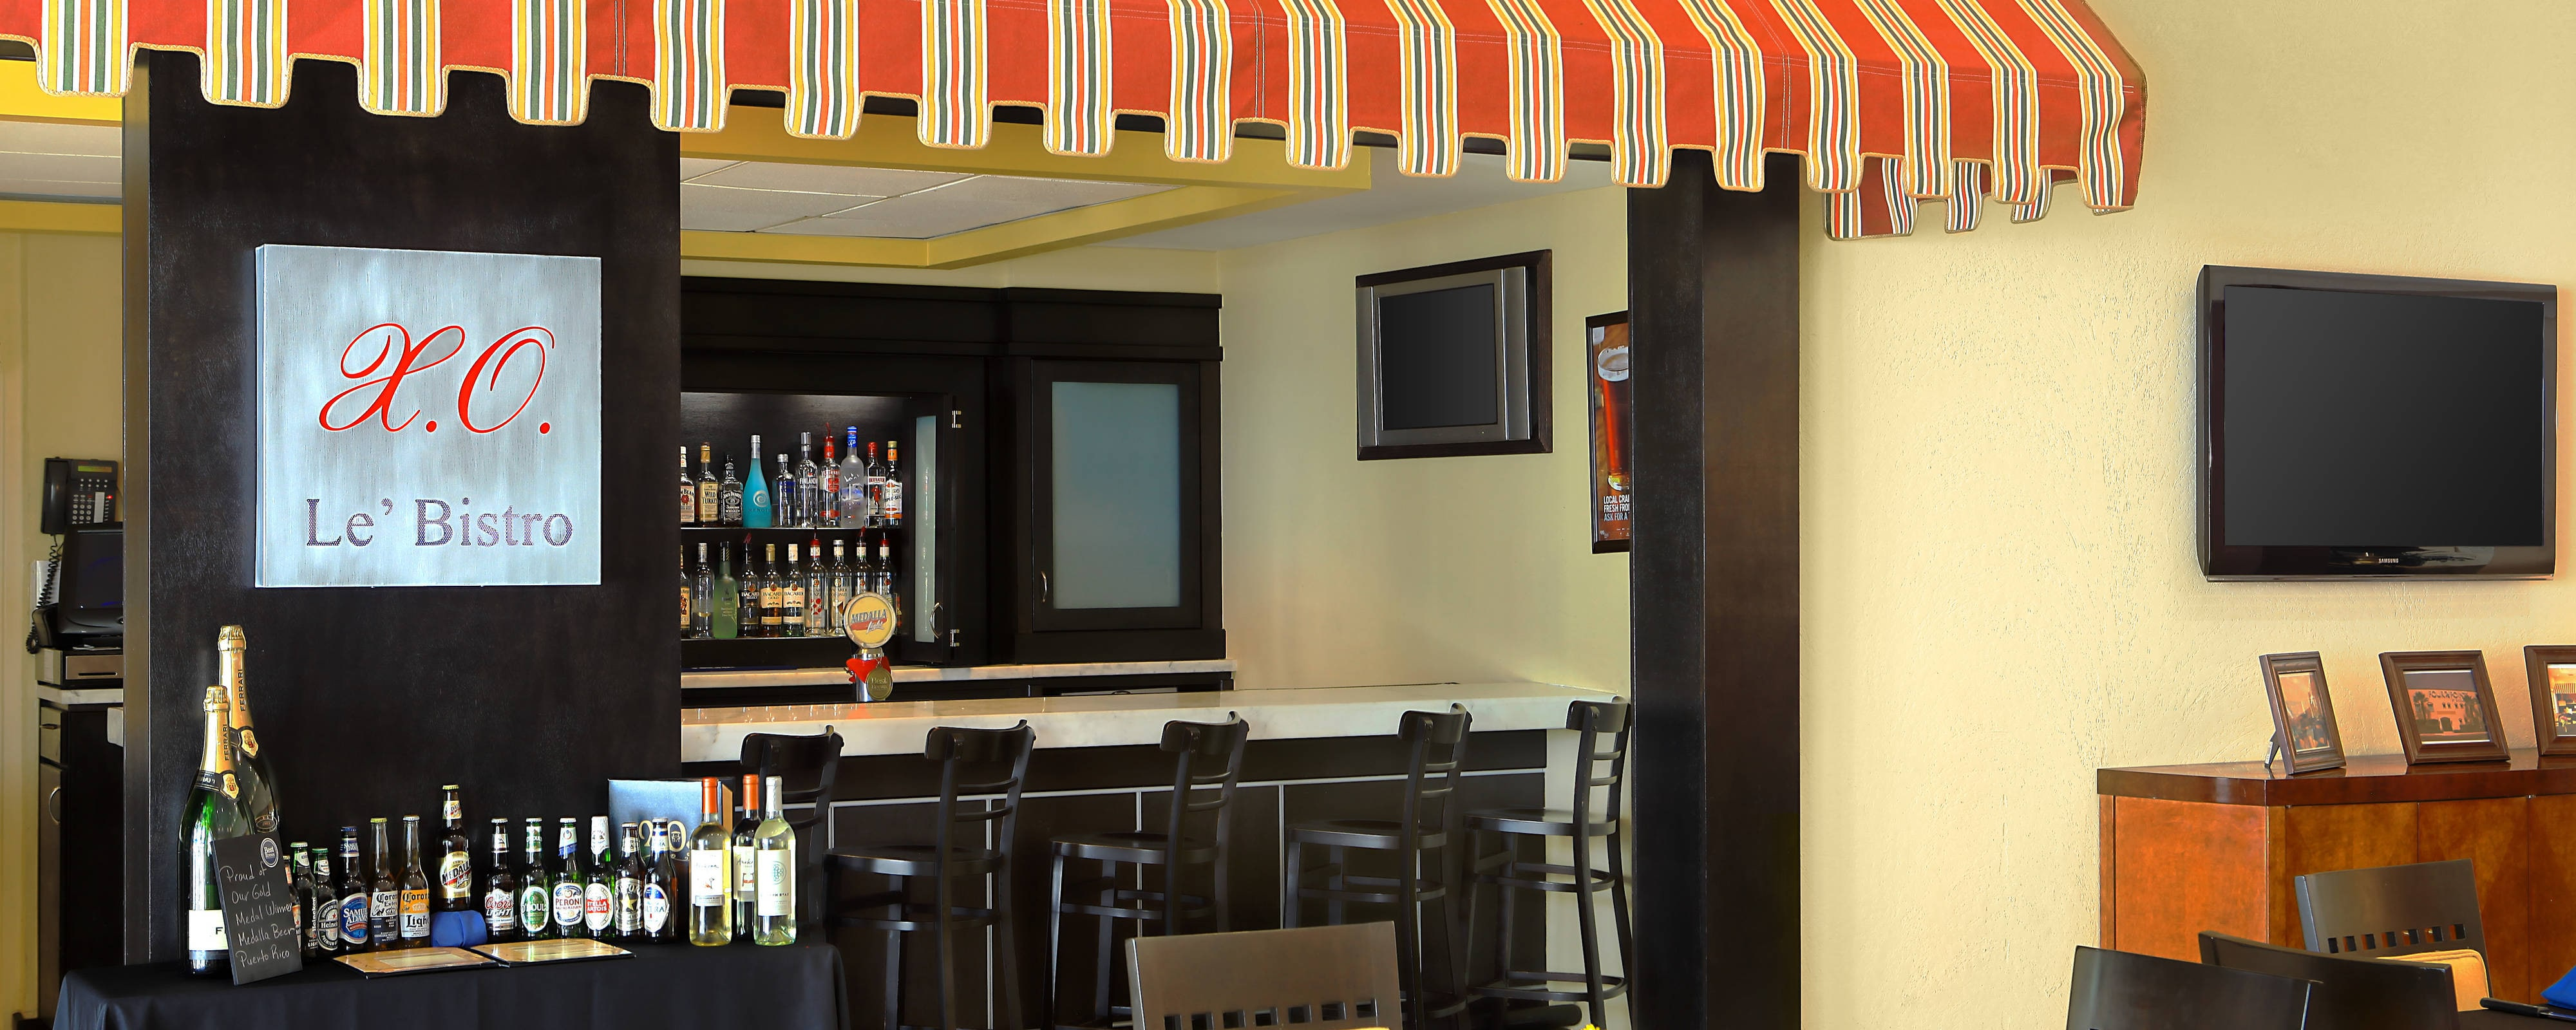 Caguas hotel restaurants and lounges | Four Points by Sheraton ...